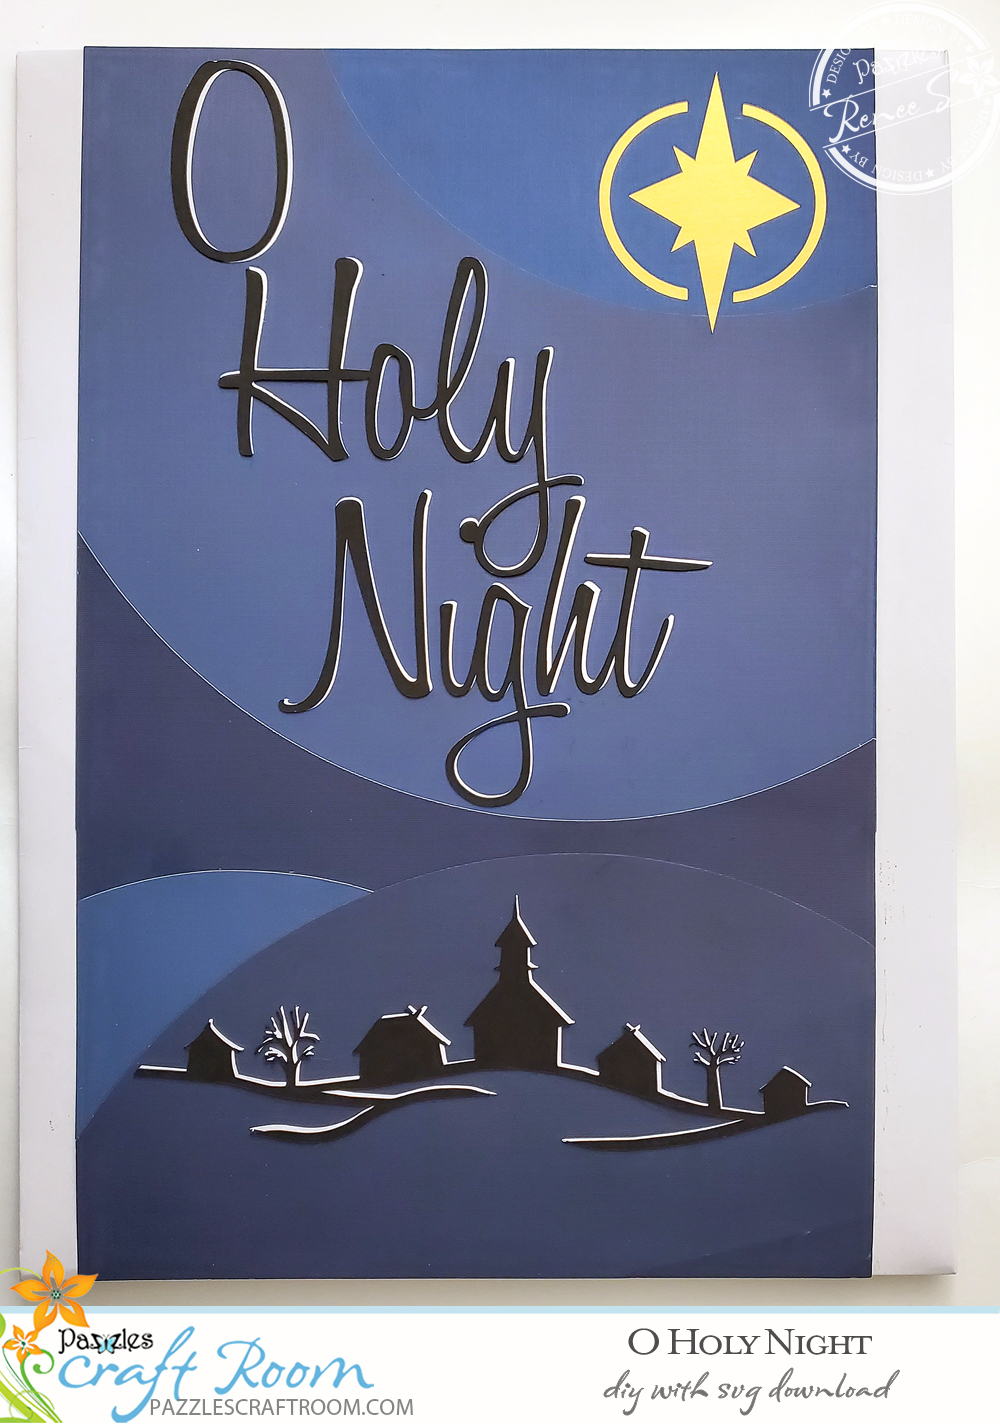 Pazzles DIY O Holy Night Wall Art with instant SVG download. Compatible with all major electronic cutters including Pazzles Inspiration, Cricut, and Silhouette Cameo. Design by Renee Smart.